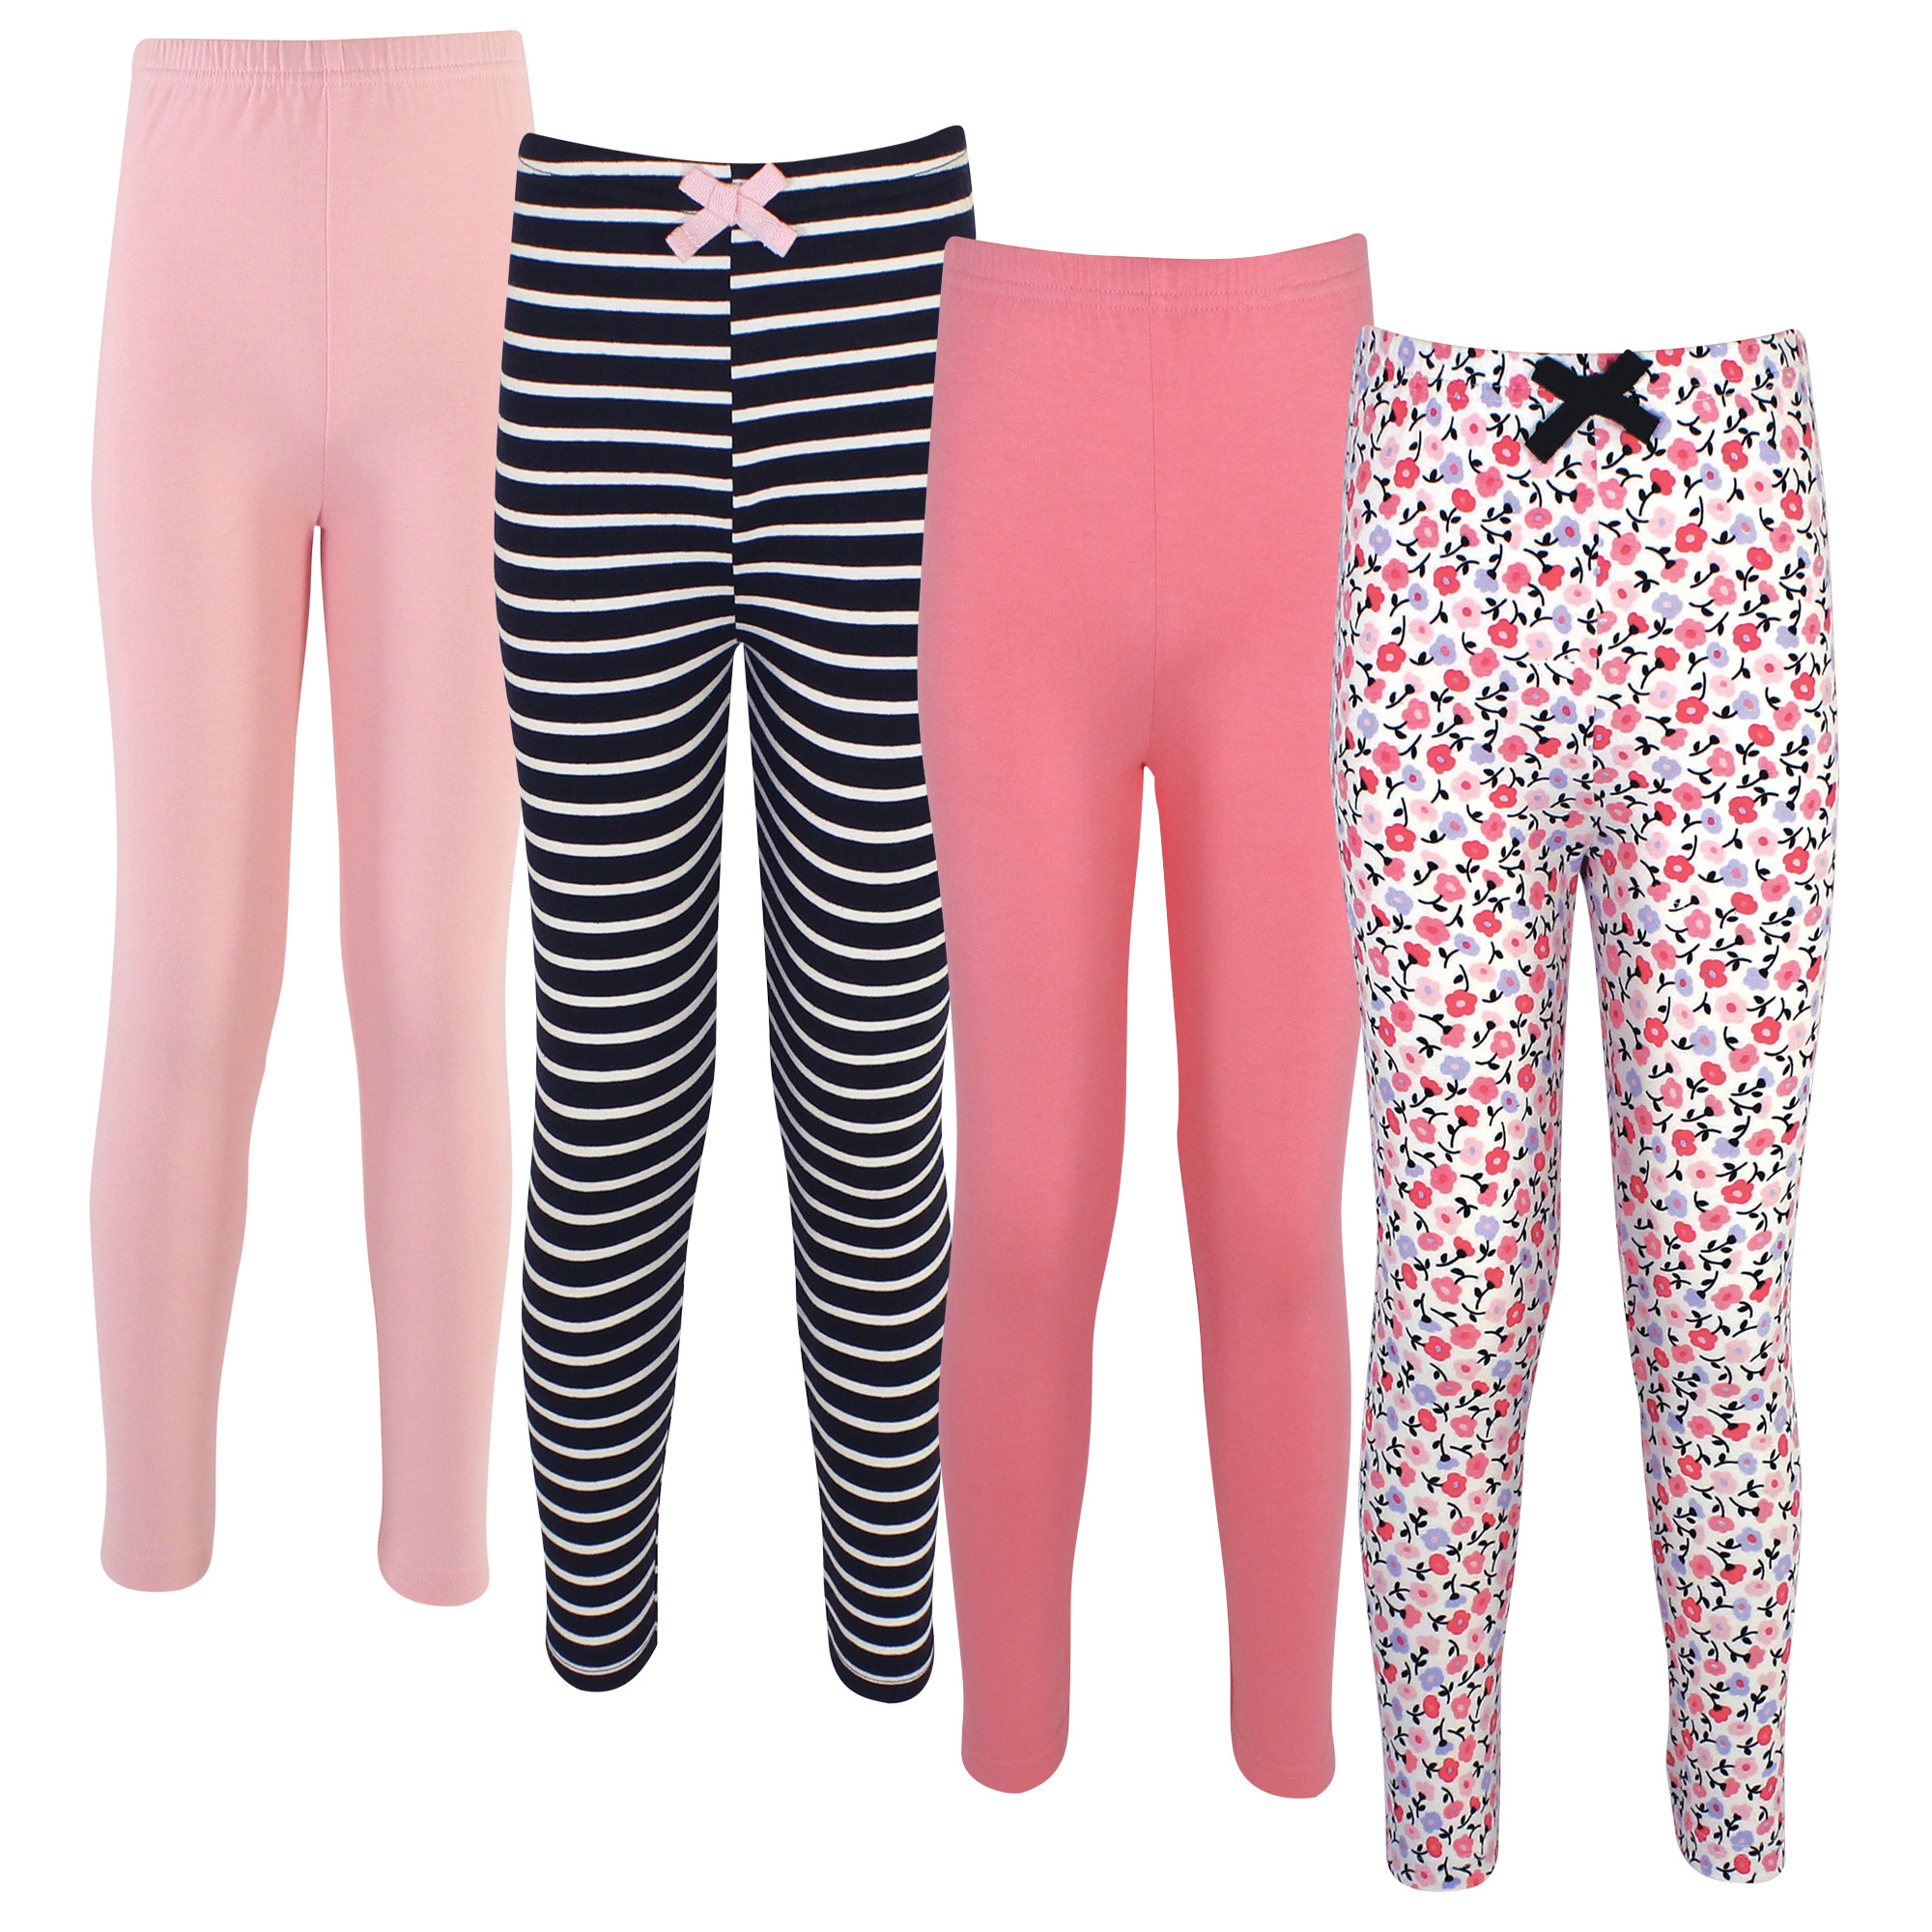 Baby Girls Infant Toddler Cotton 3 Pack of Soft Stock Tights Warm Legging Pants